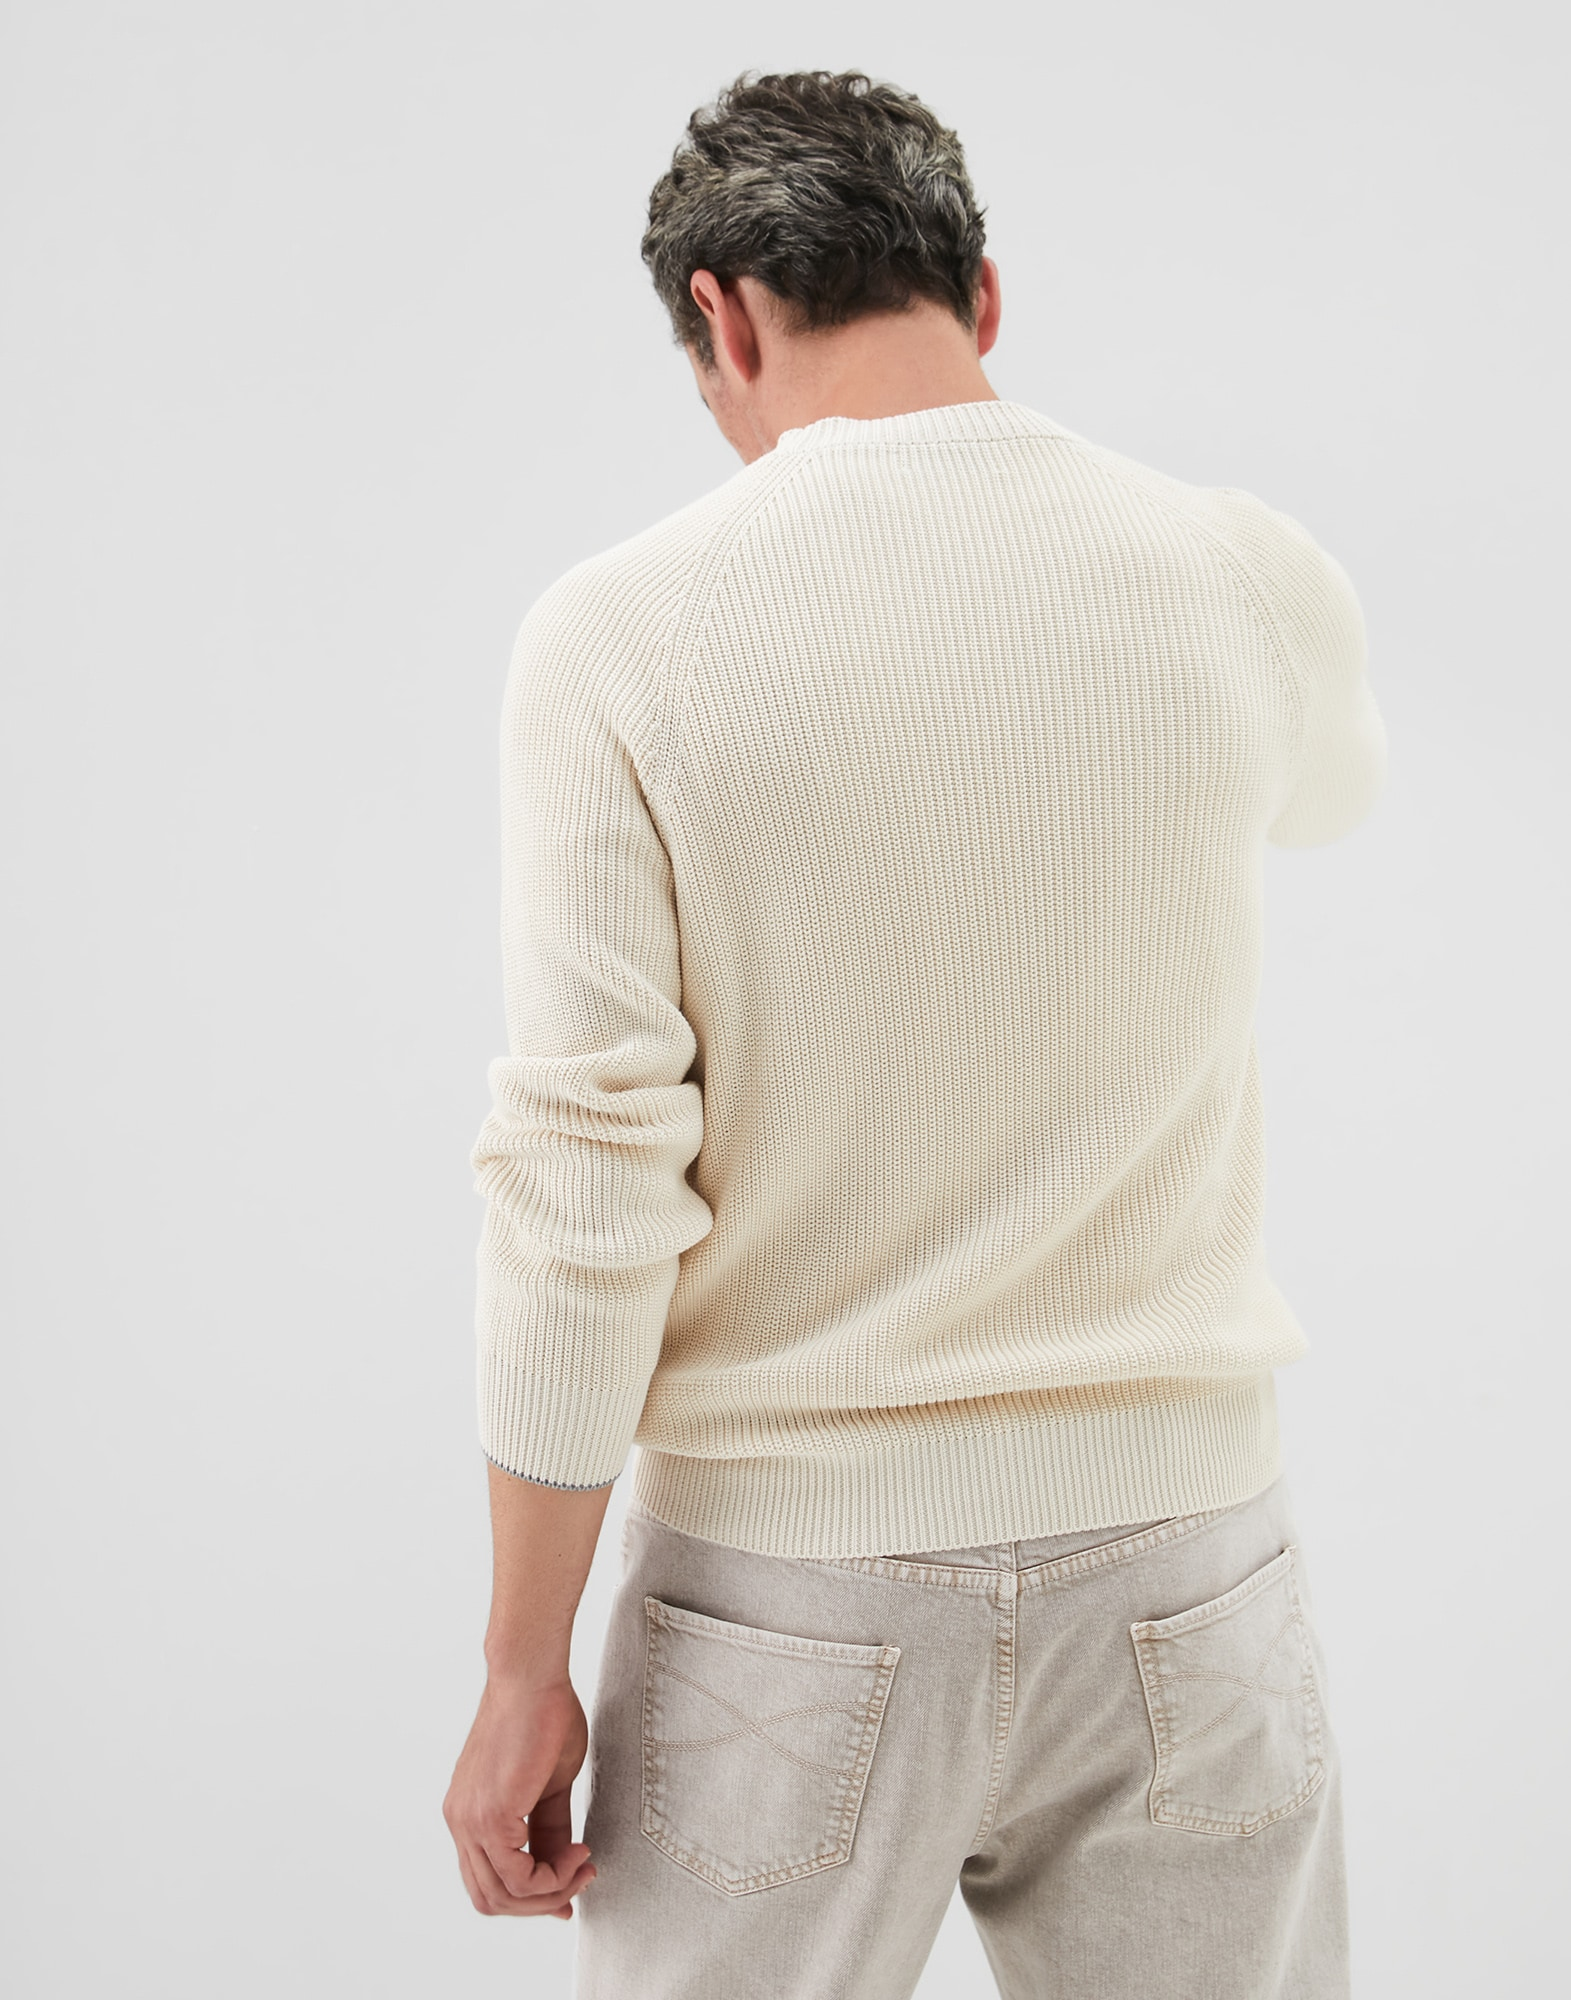 Crewneck Sweater Ivory Man 1 - Brunello Cucinelli